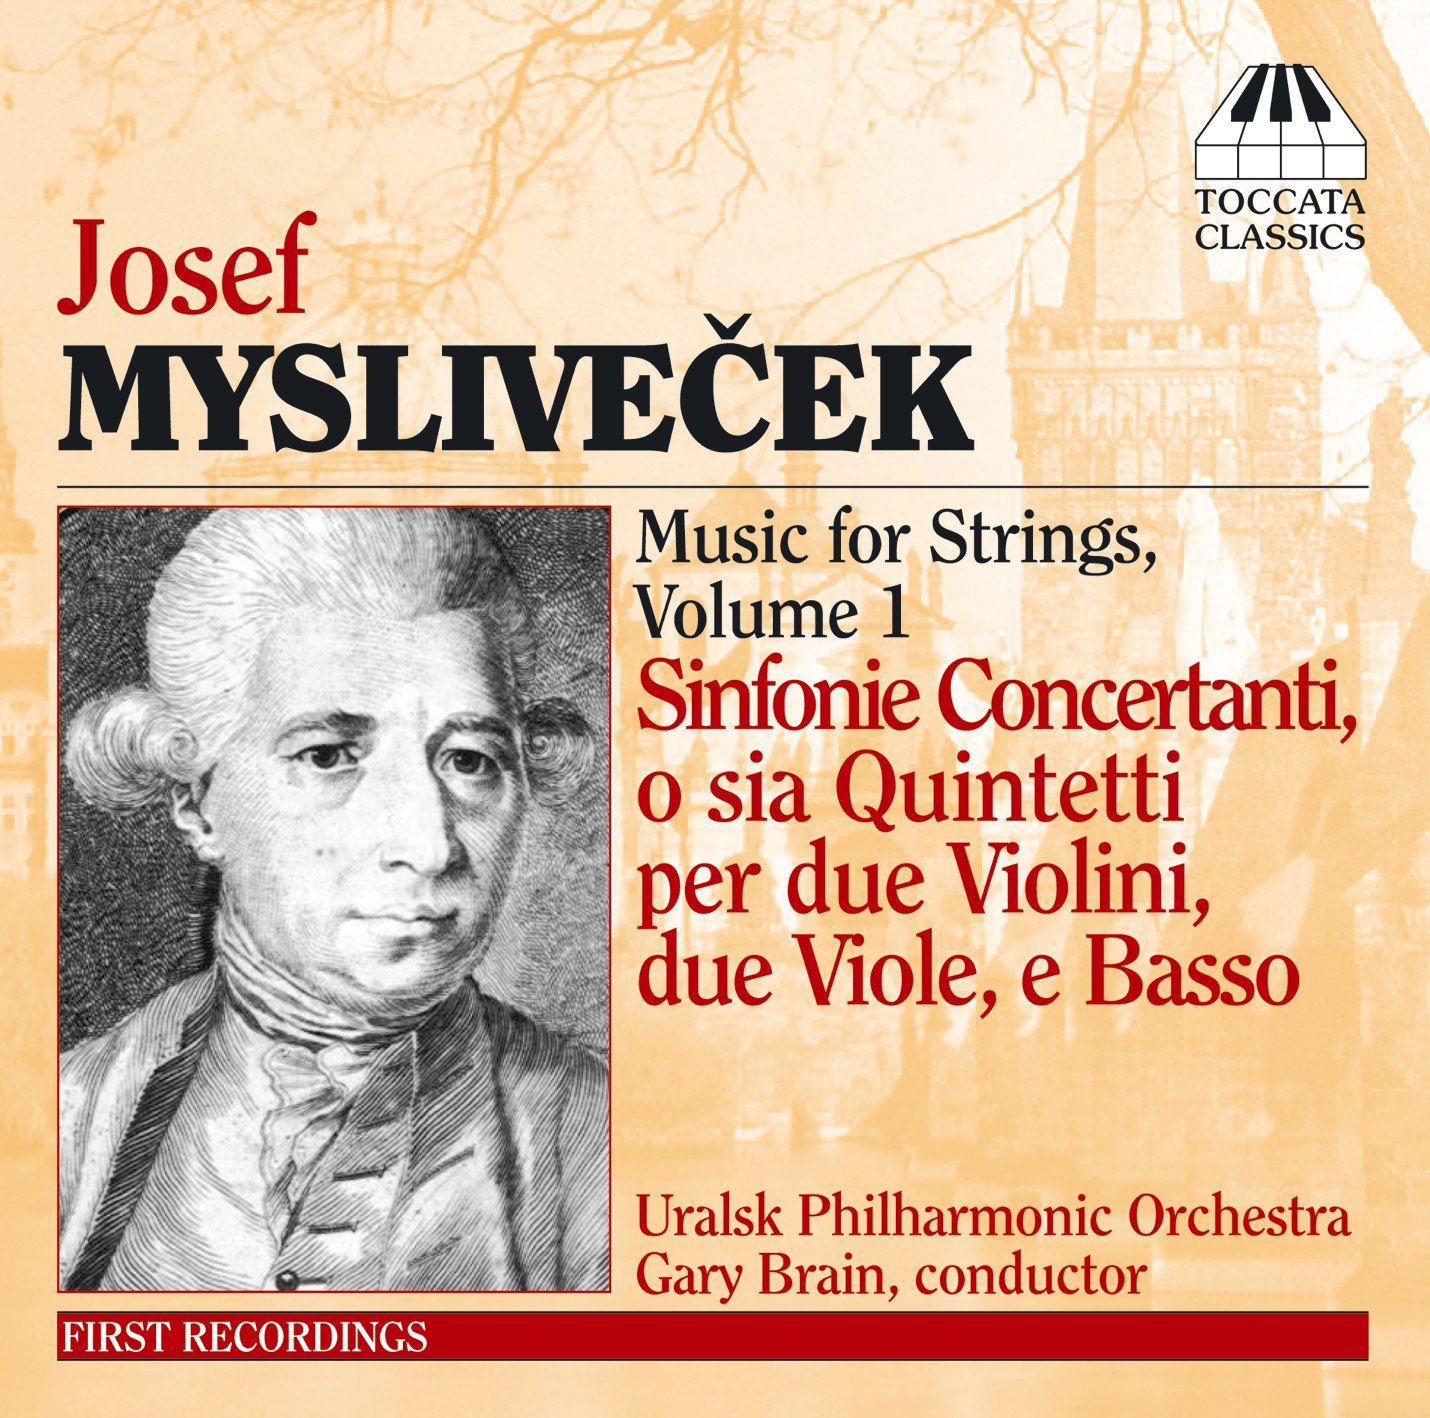 Josef Mysliveček: Music for Strings